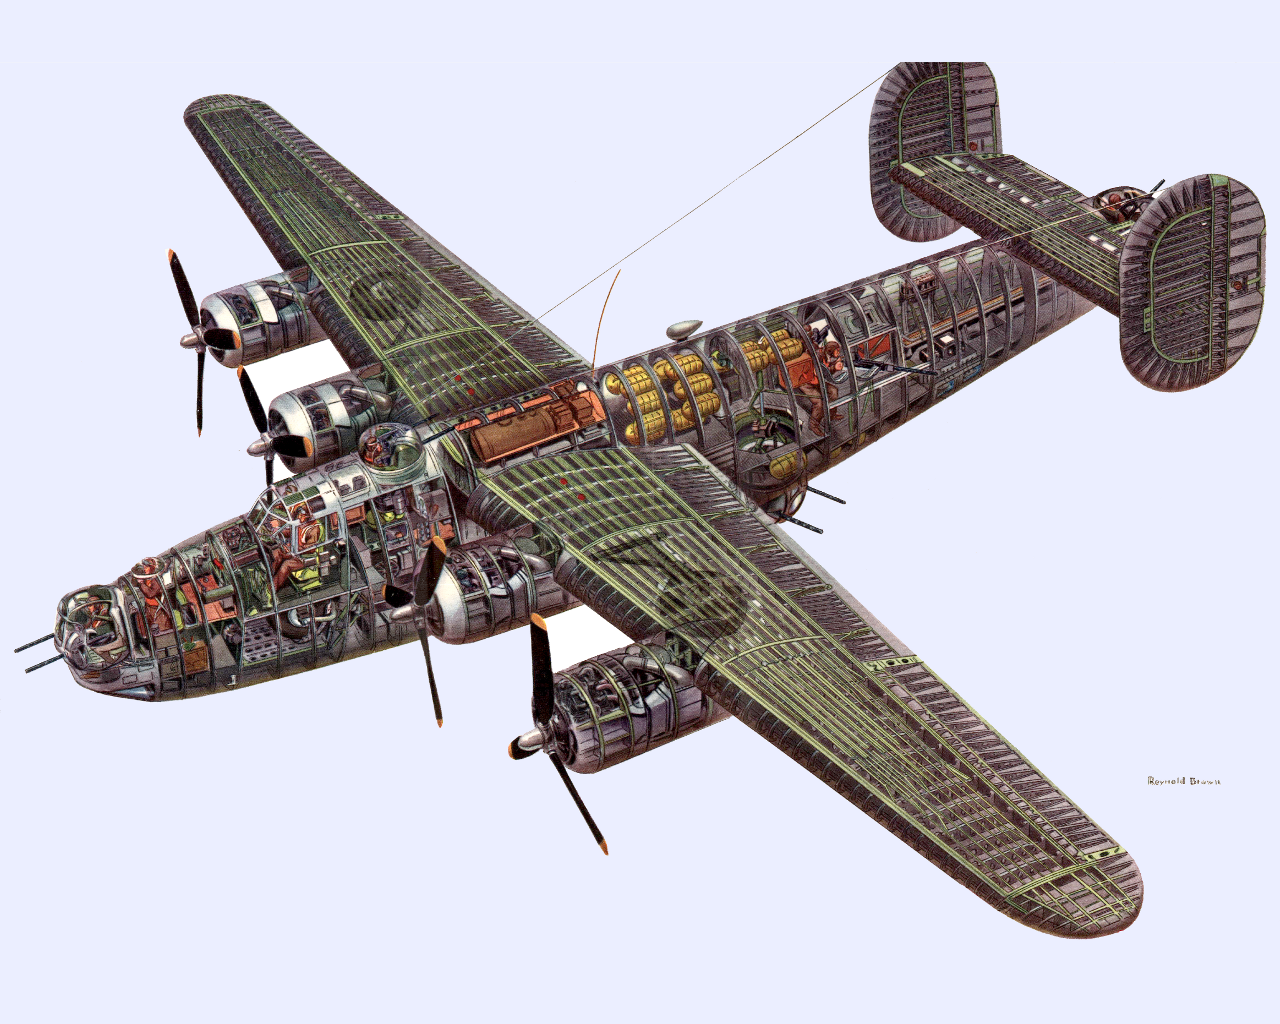 1280x1024 - Consolidated B-24 Liberator Wallpapers 25